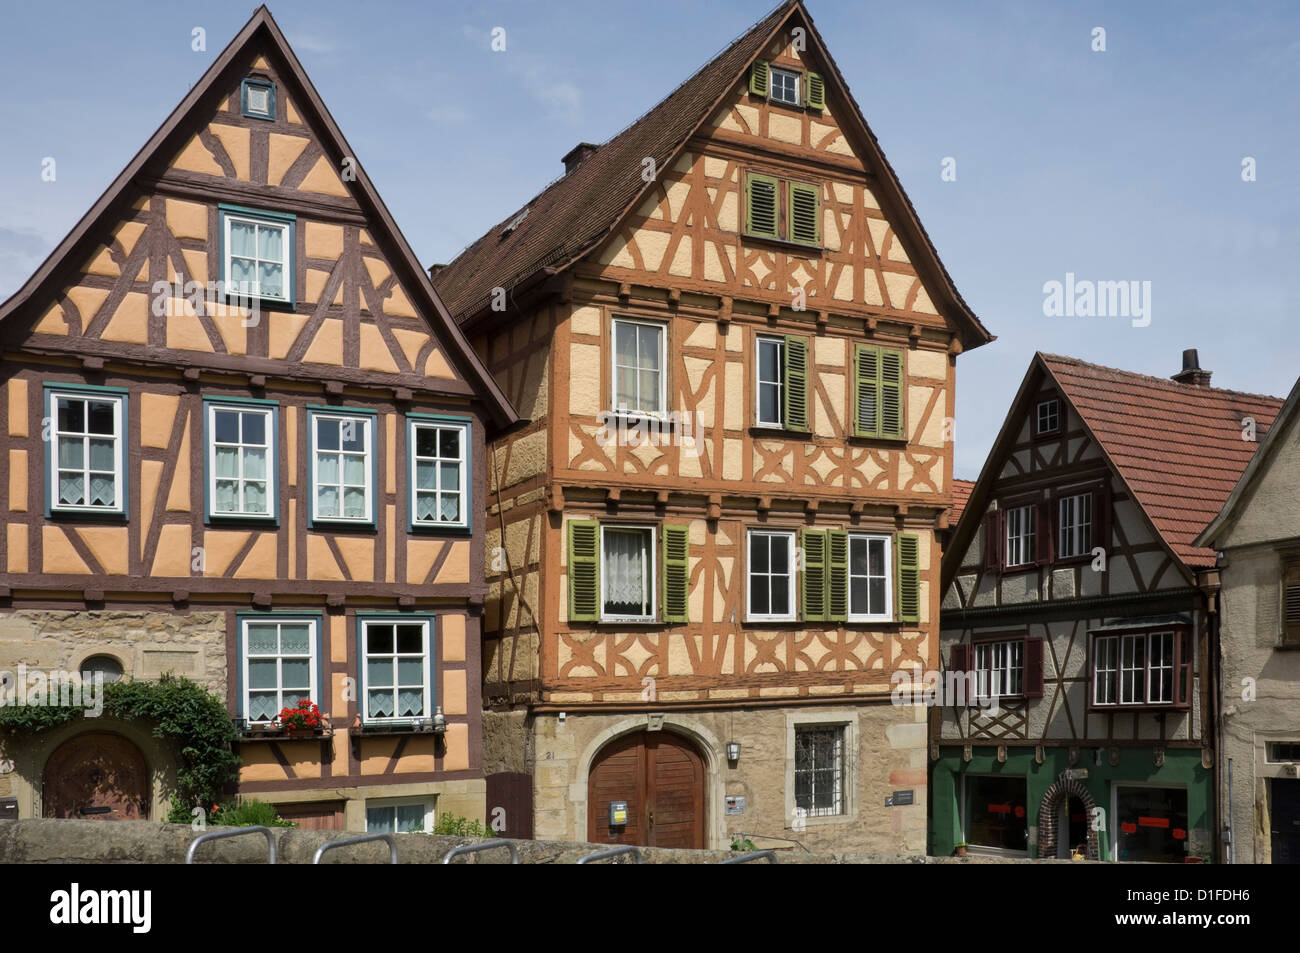 Medieval timbered and brick infill houses in Marbach am Neckar, Baden Wurttemberg, Germany, Europe - Stock Image